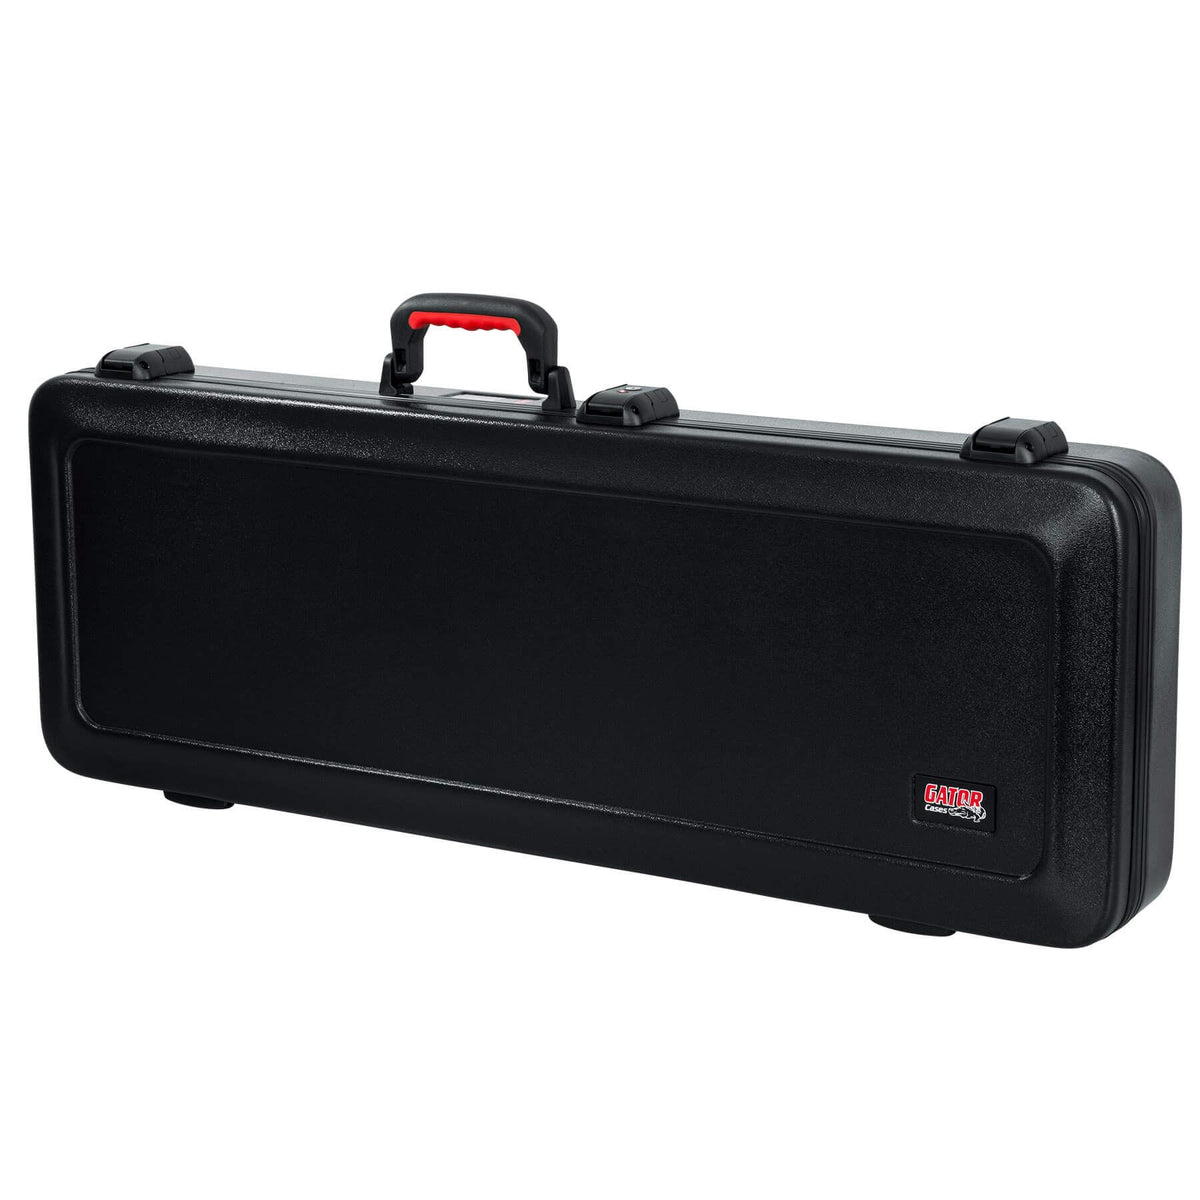 Gator TSA Electric Case fits ESP Viper 256, Viper-50